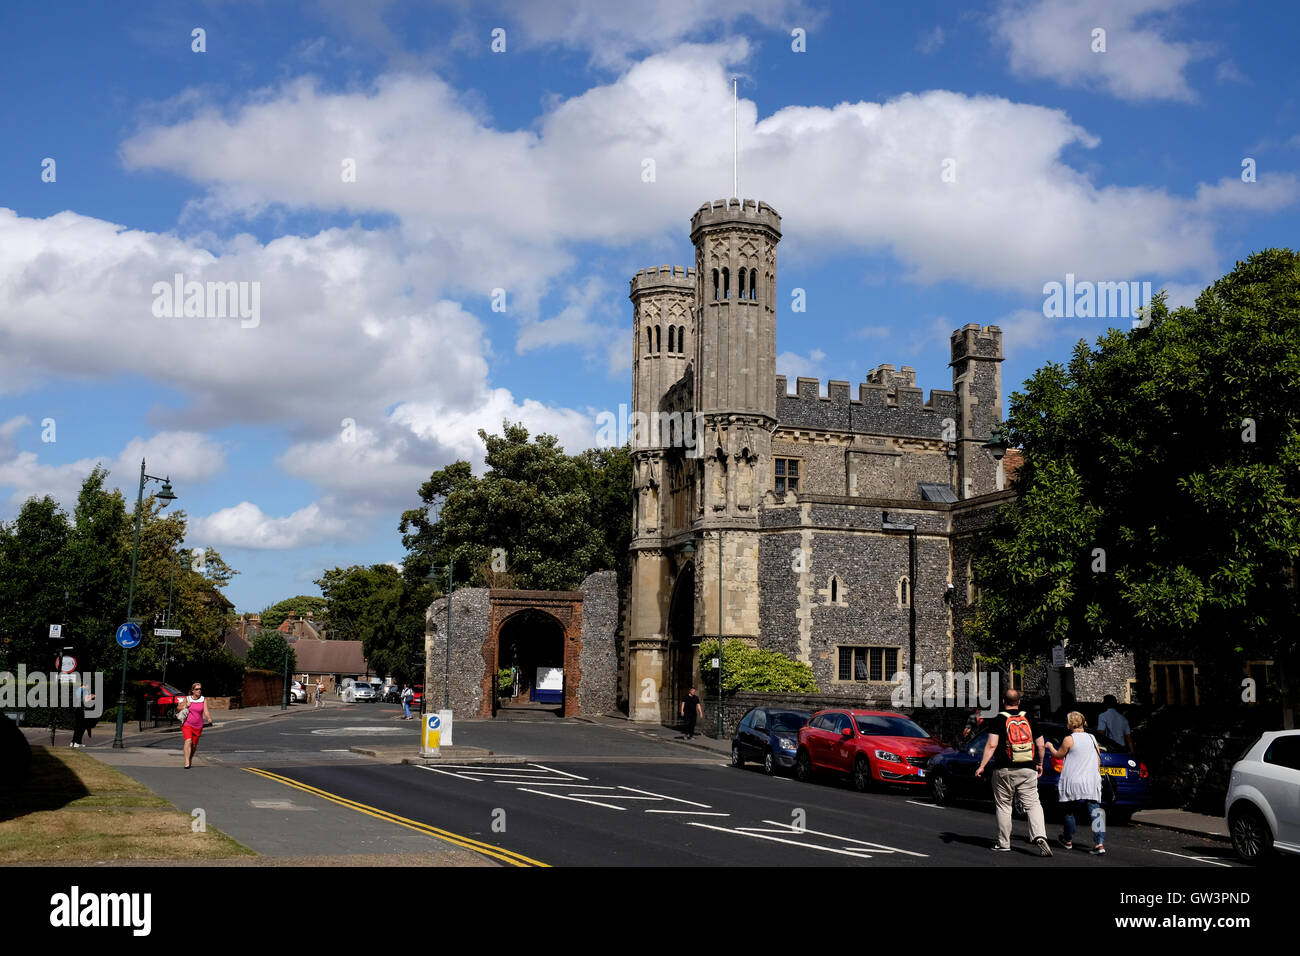 the kings school coeducational independent in the city of canterbury east kent uk september 2016 - Stock Image